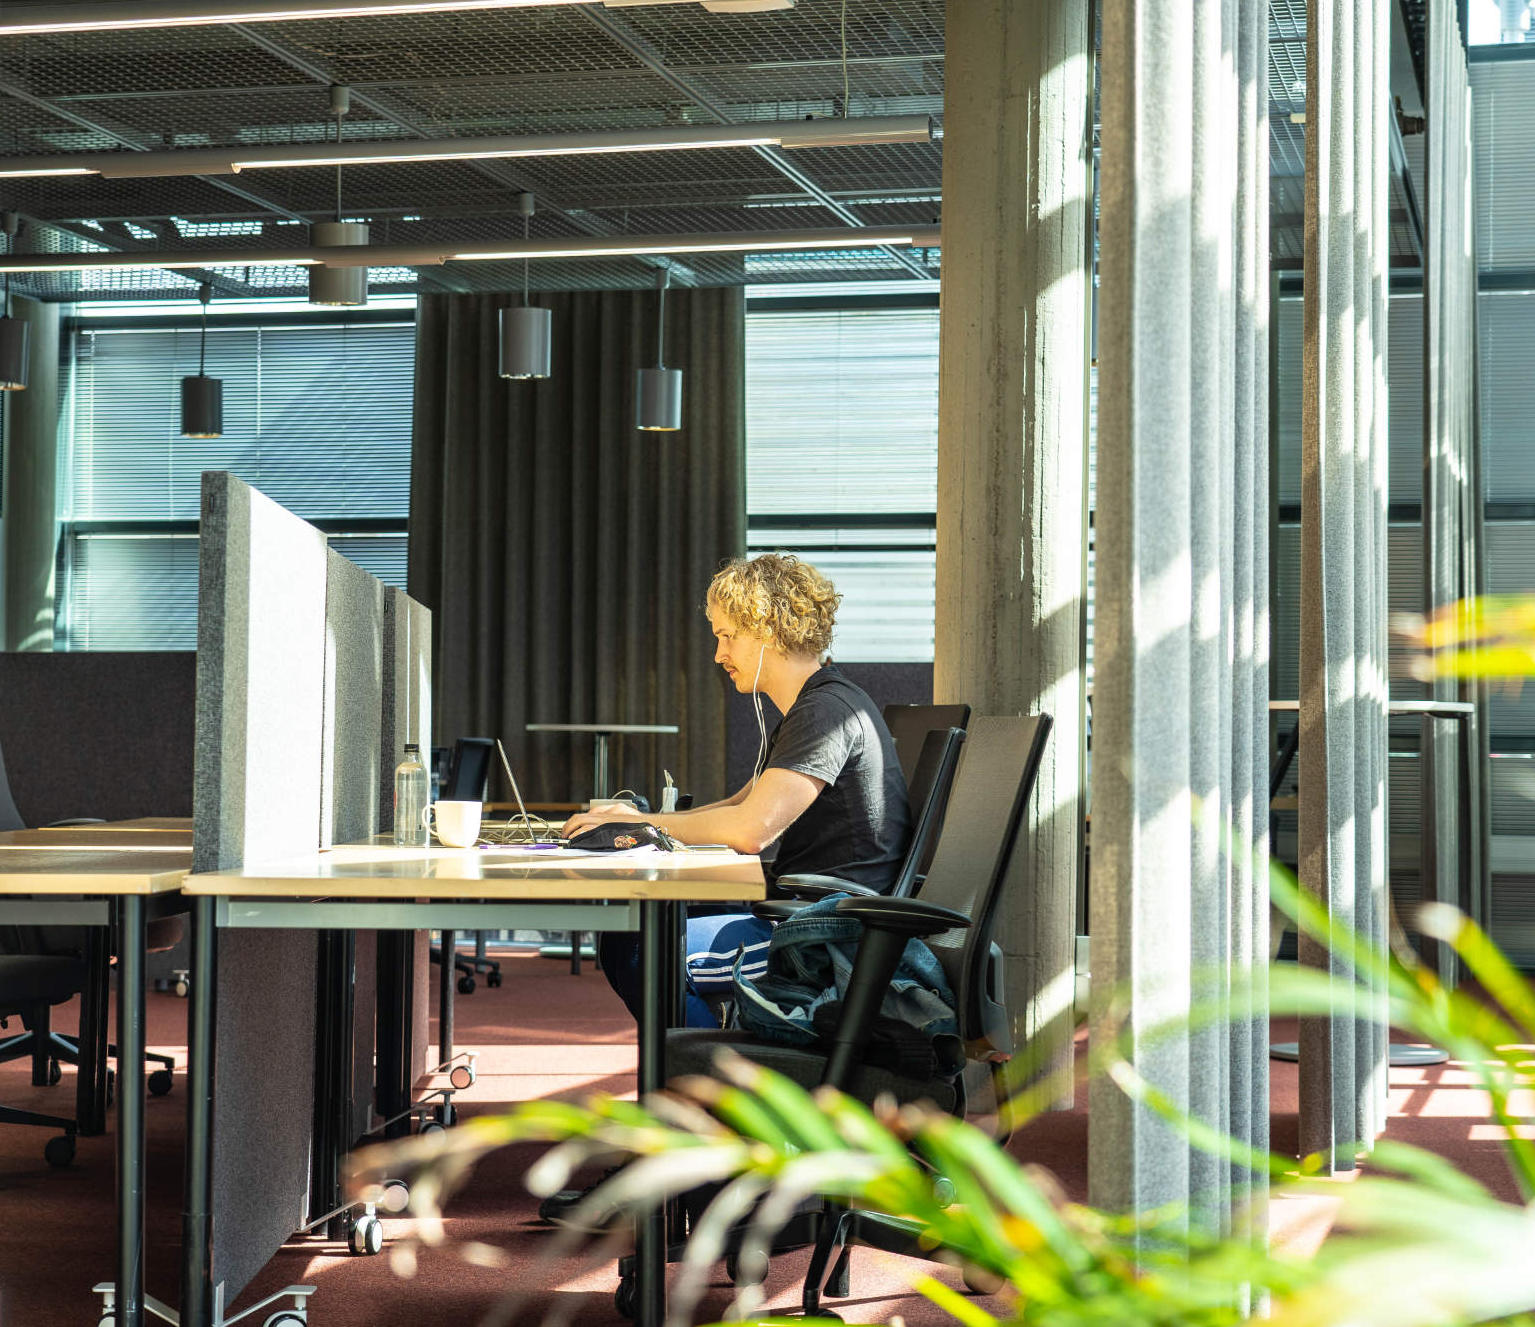 A person working at a desk at Terkko Health Hub, our Meilahti location.